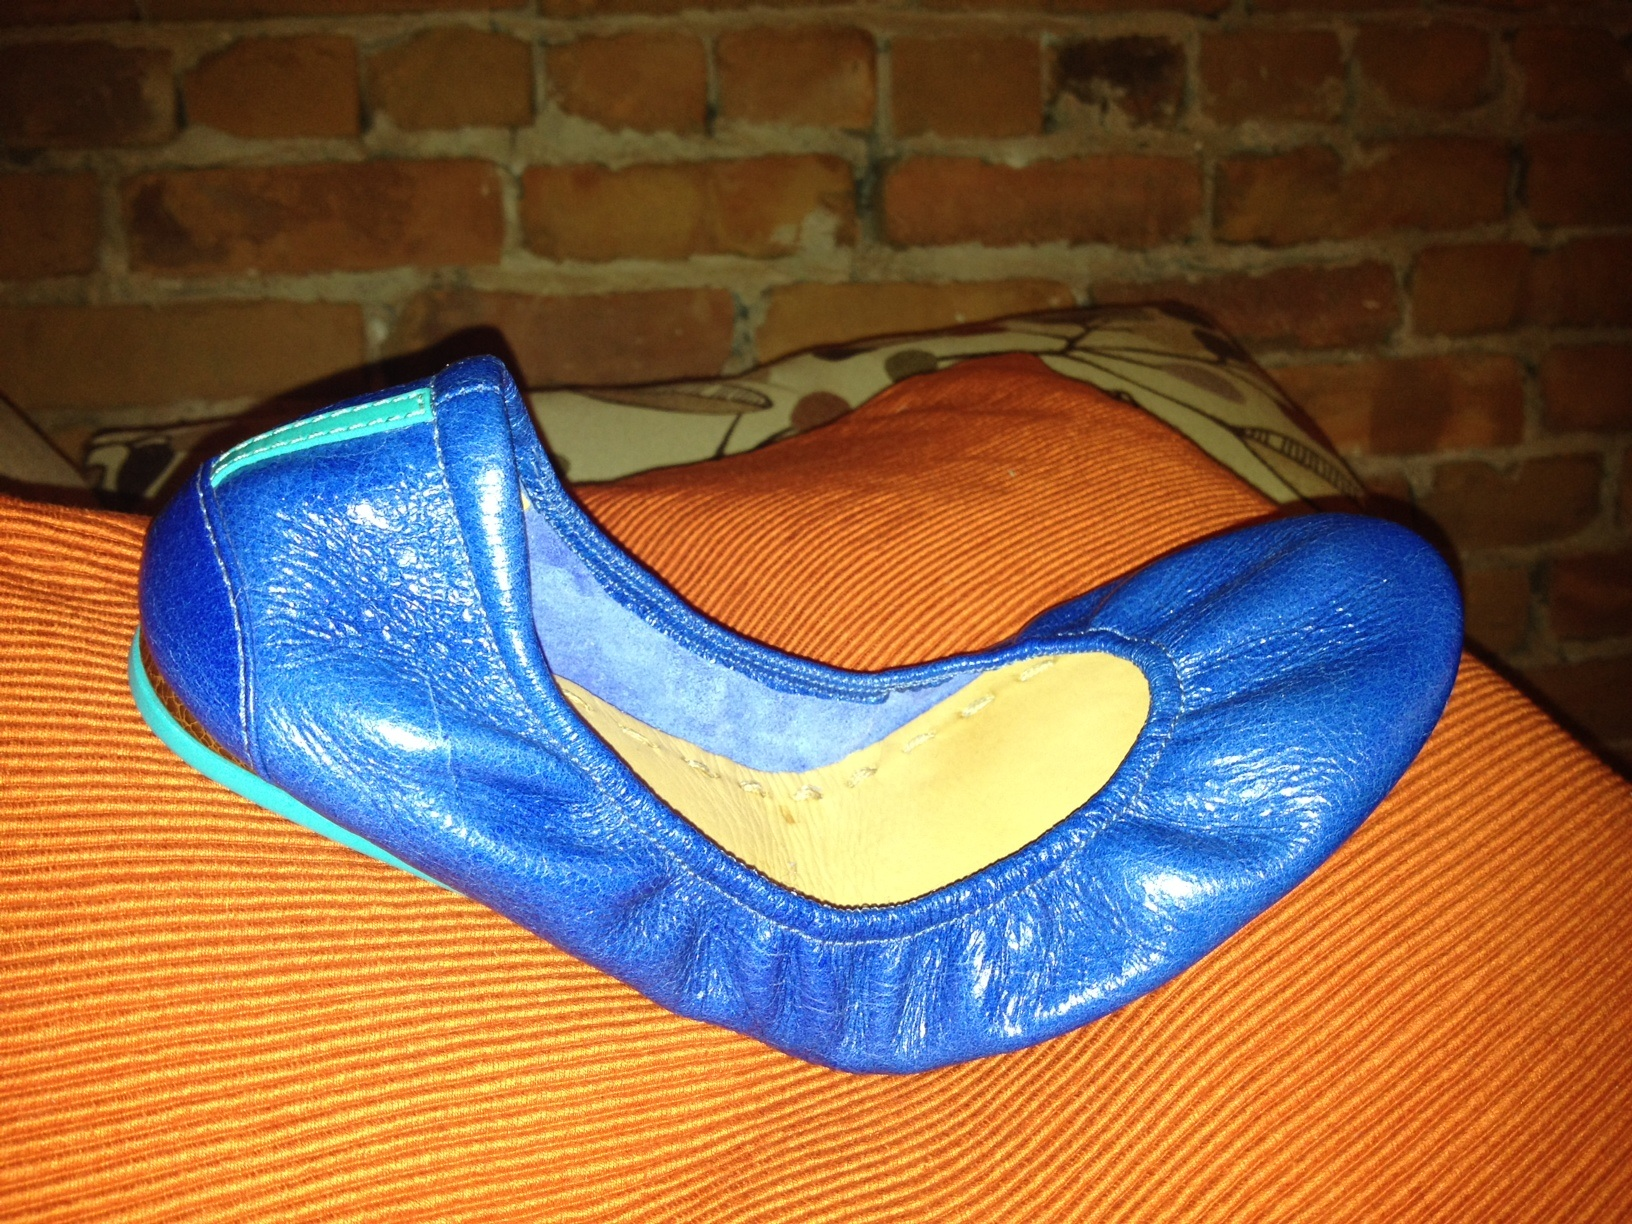 fb48f46bbe I always notice ballet flats and I am in constant search for a comfortable  and stylish pair. I first noticed Tieks when one of my personal training  clients ...